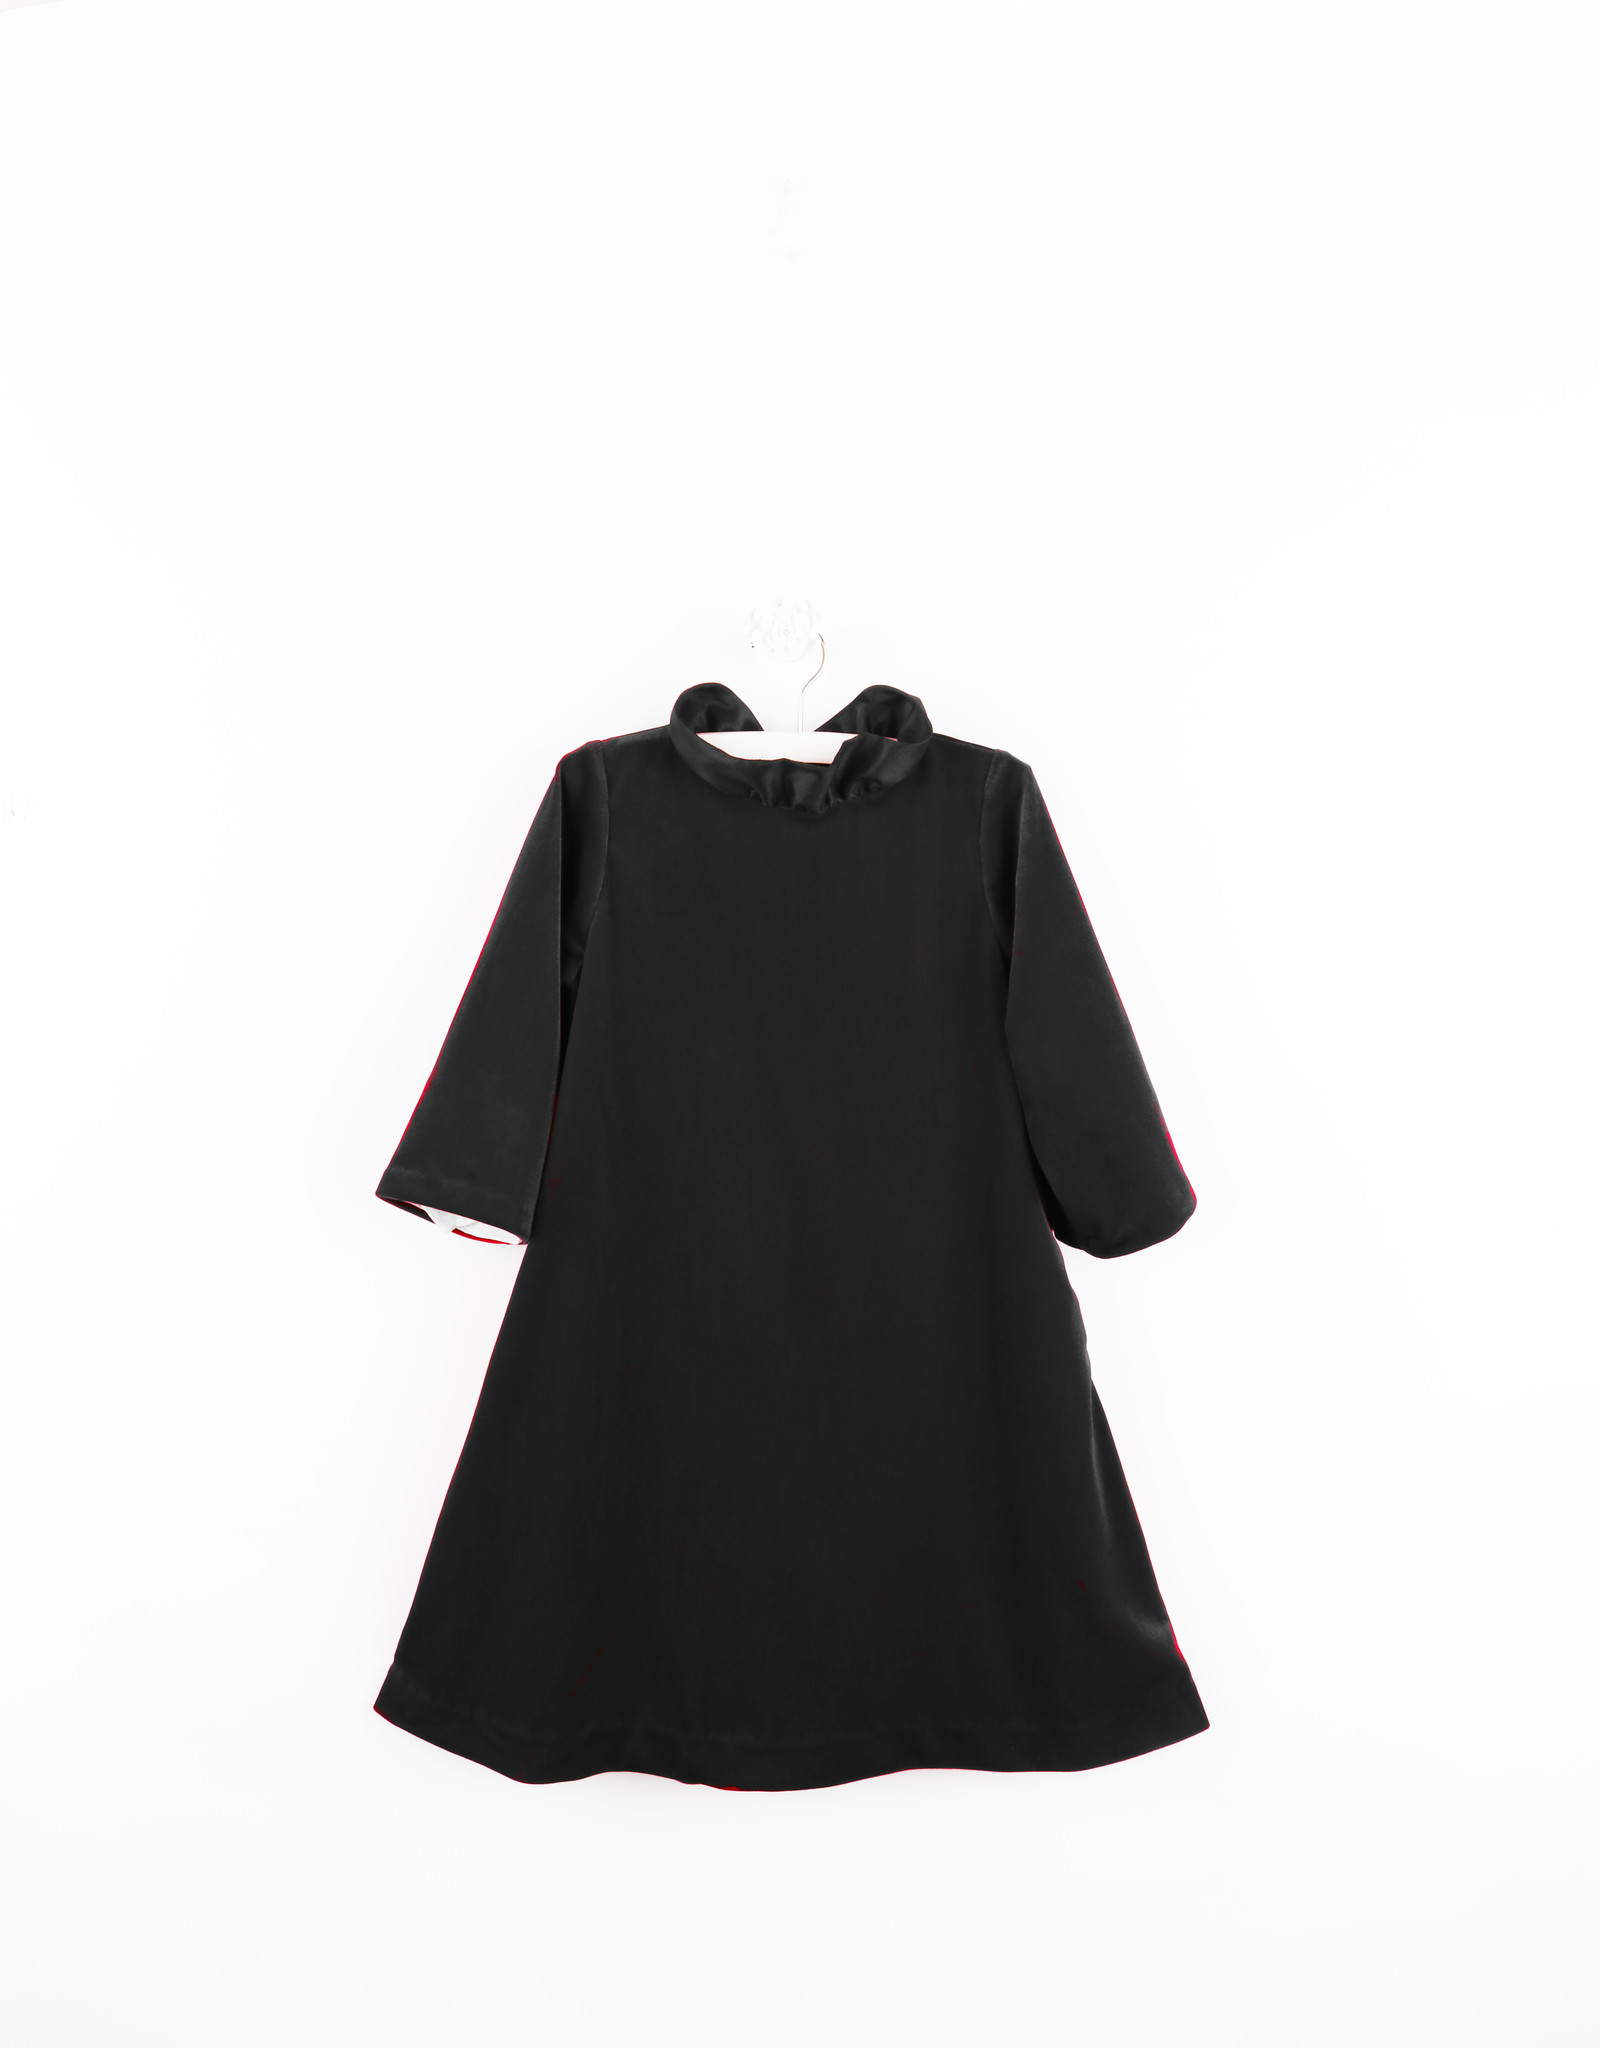 Gabby Black Velvet A-line Dress with Ruffle Neck and  Bow Back